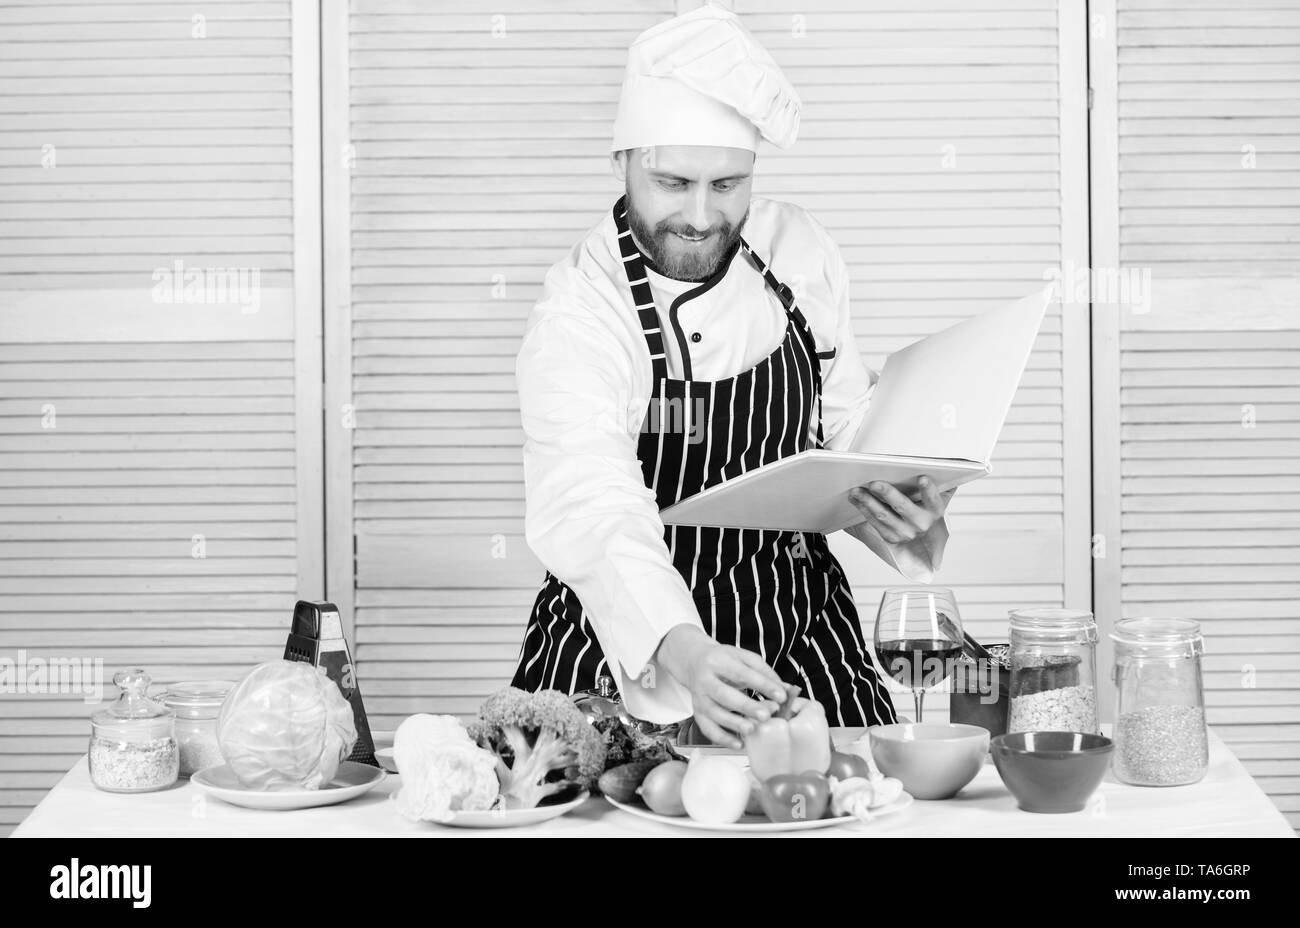 Book family recipes. Ultimate cooking guide for beginners. According to recipe. Man bearded chef cooking food. Guy read book recipes. Culinary arts concept. Man learn recipe. Improve cooking skill. - Stock Image